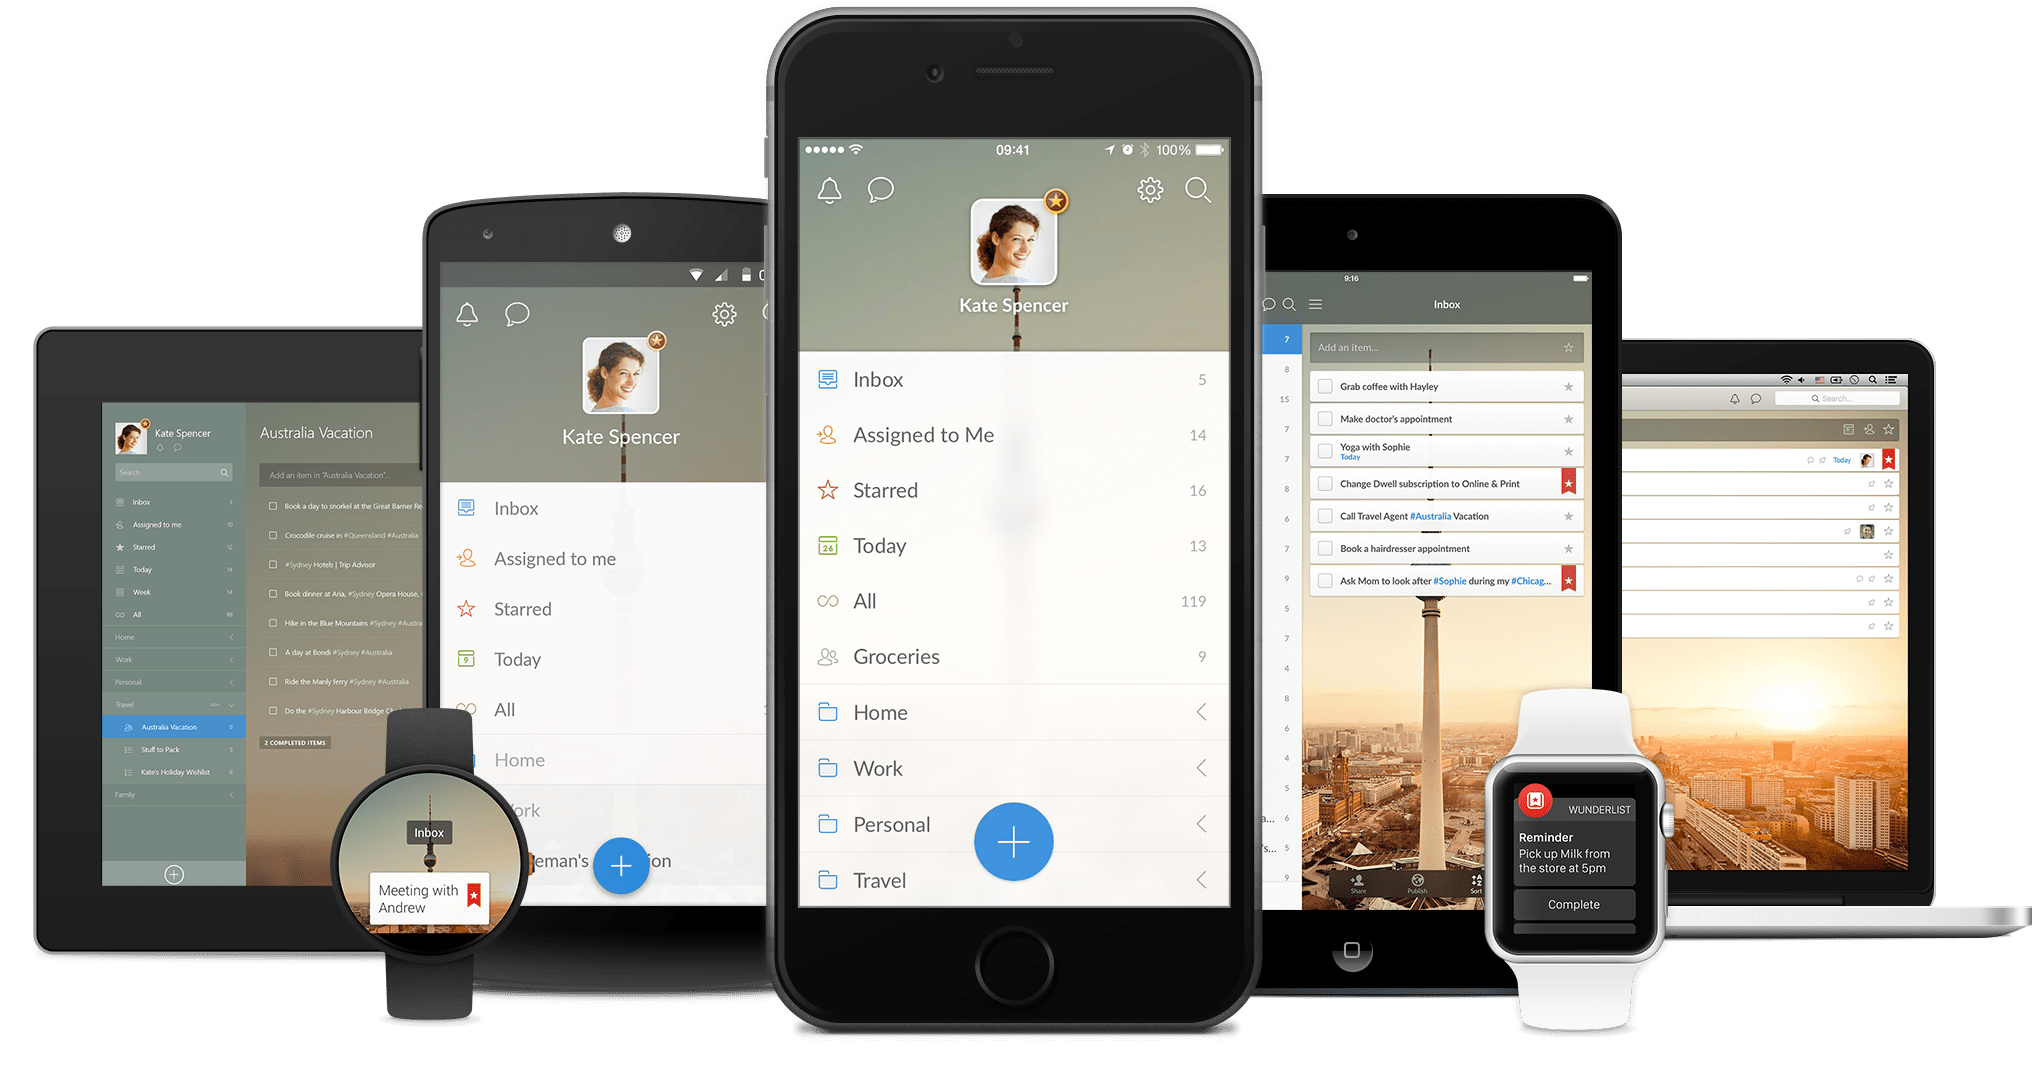 Wunderlist is available on nearly every modern browser and operating system.